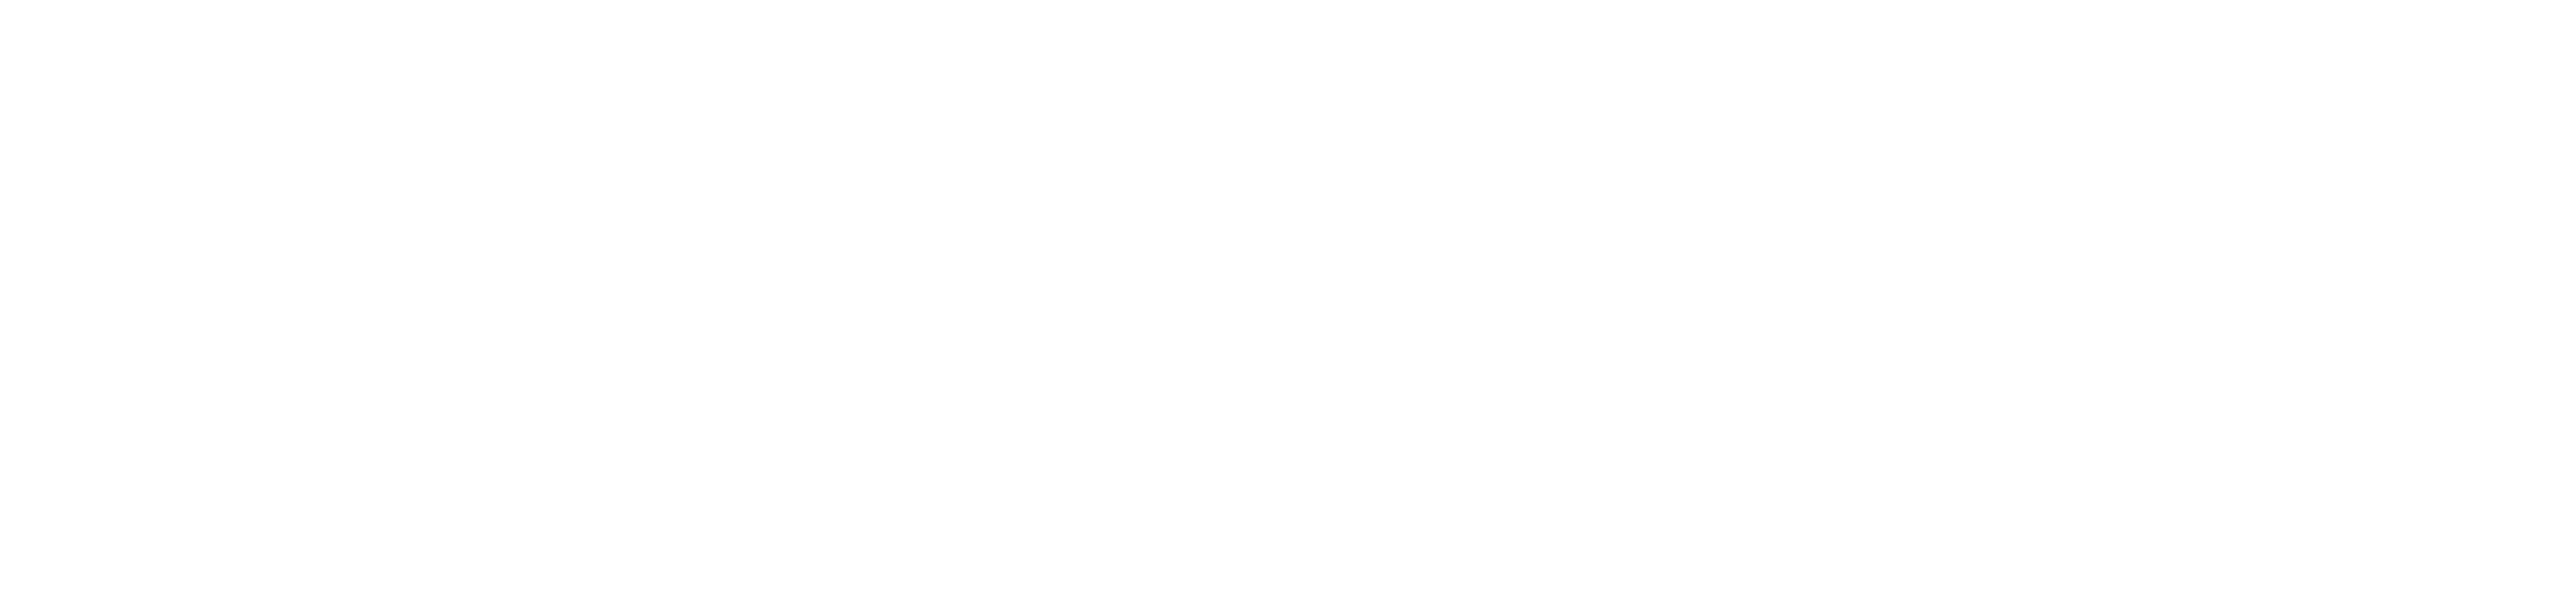 The Blue Beat Label